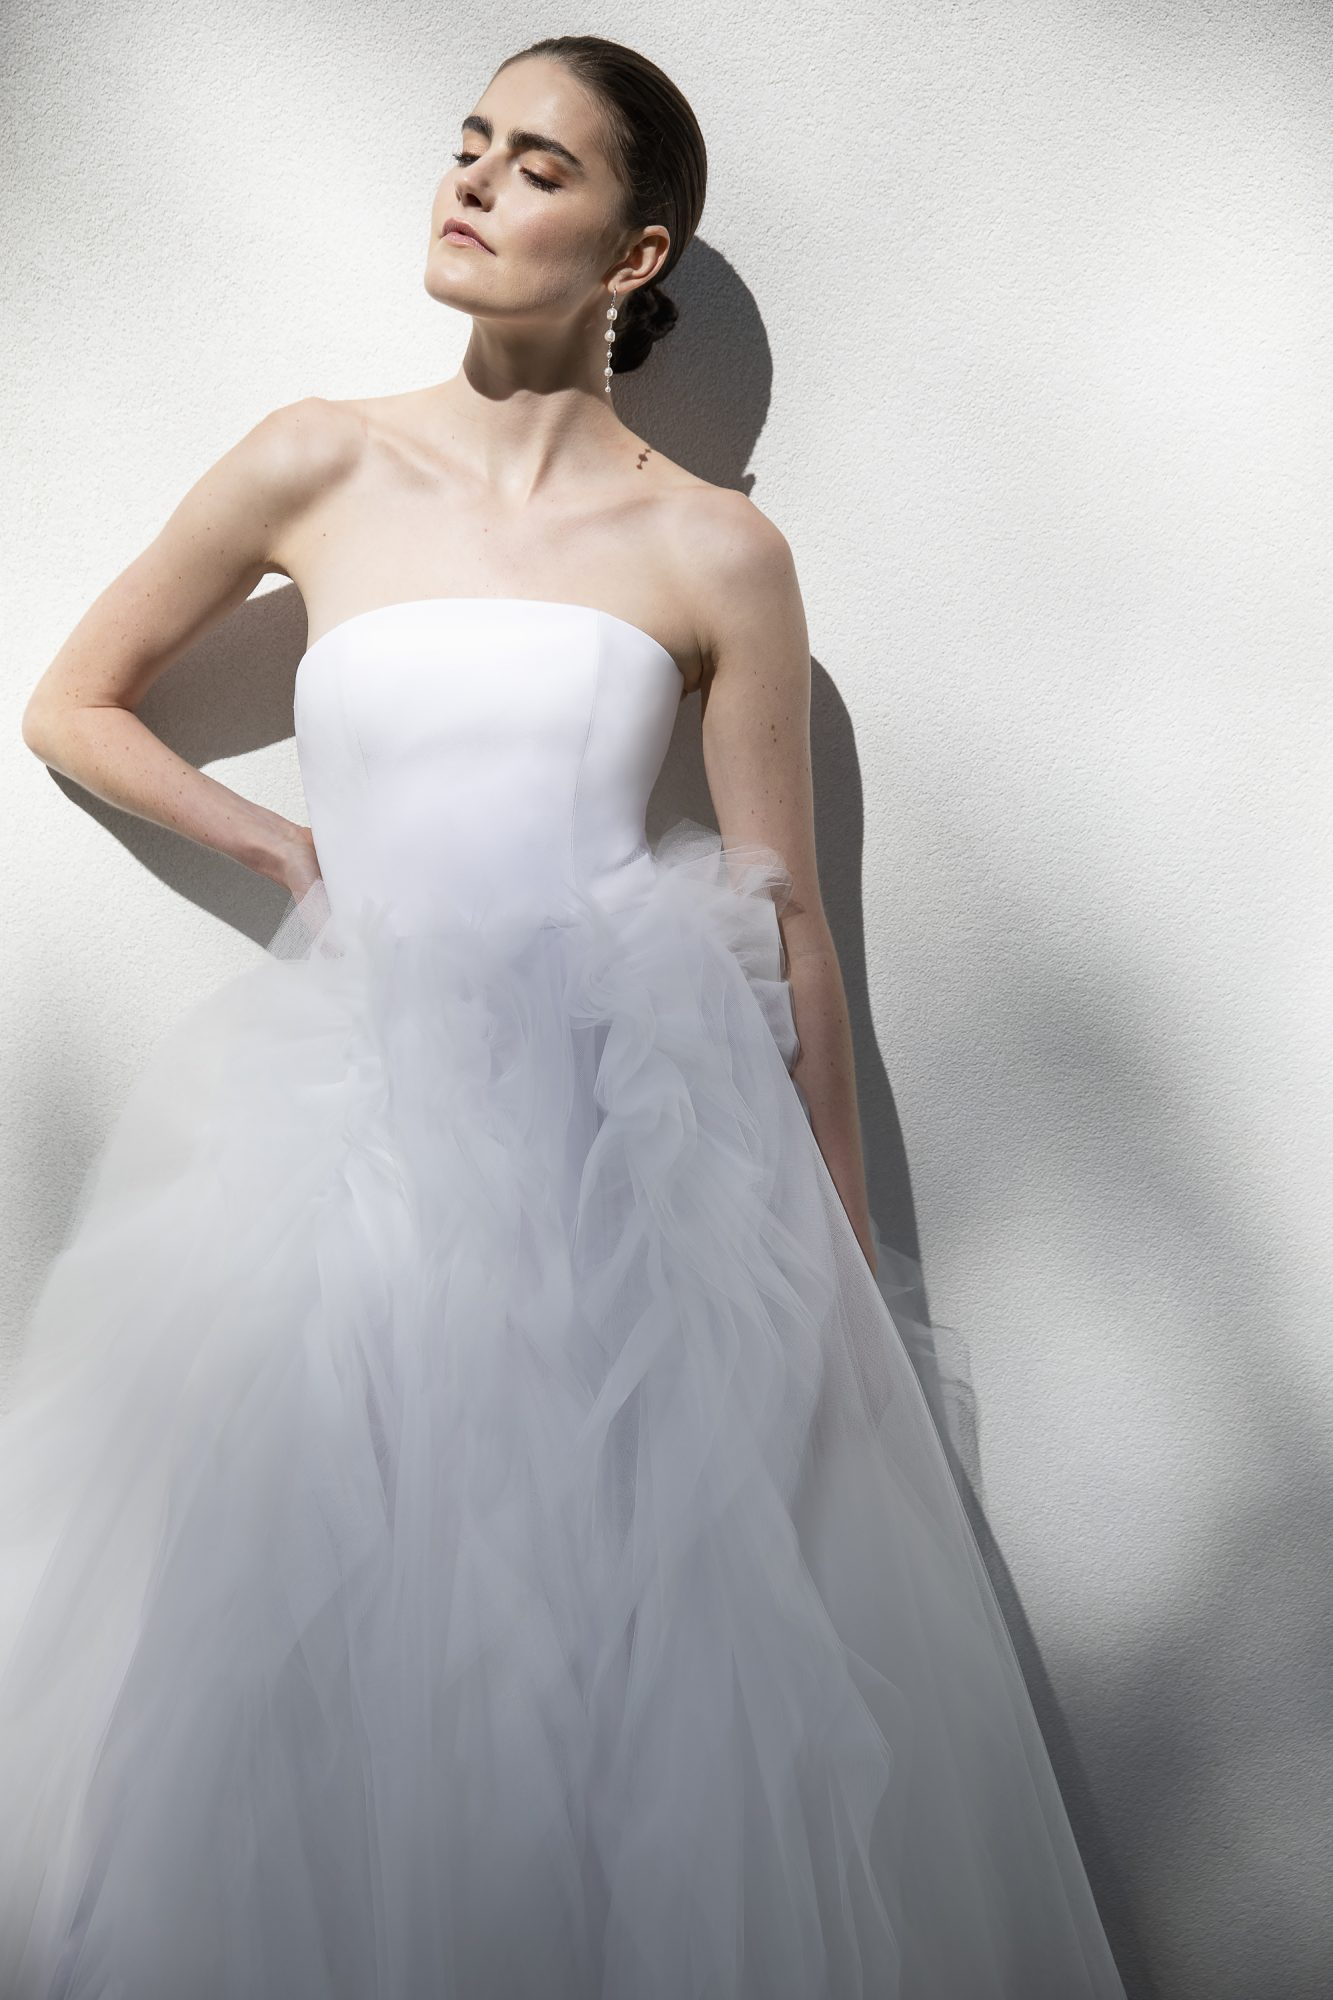 christian siriano wedding dress collection strapless dress with ruffled skirt